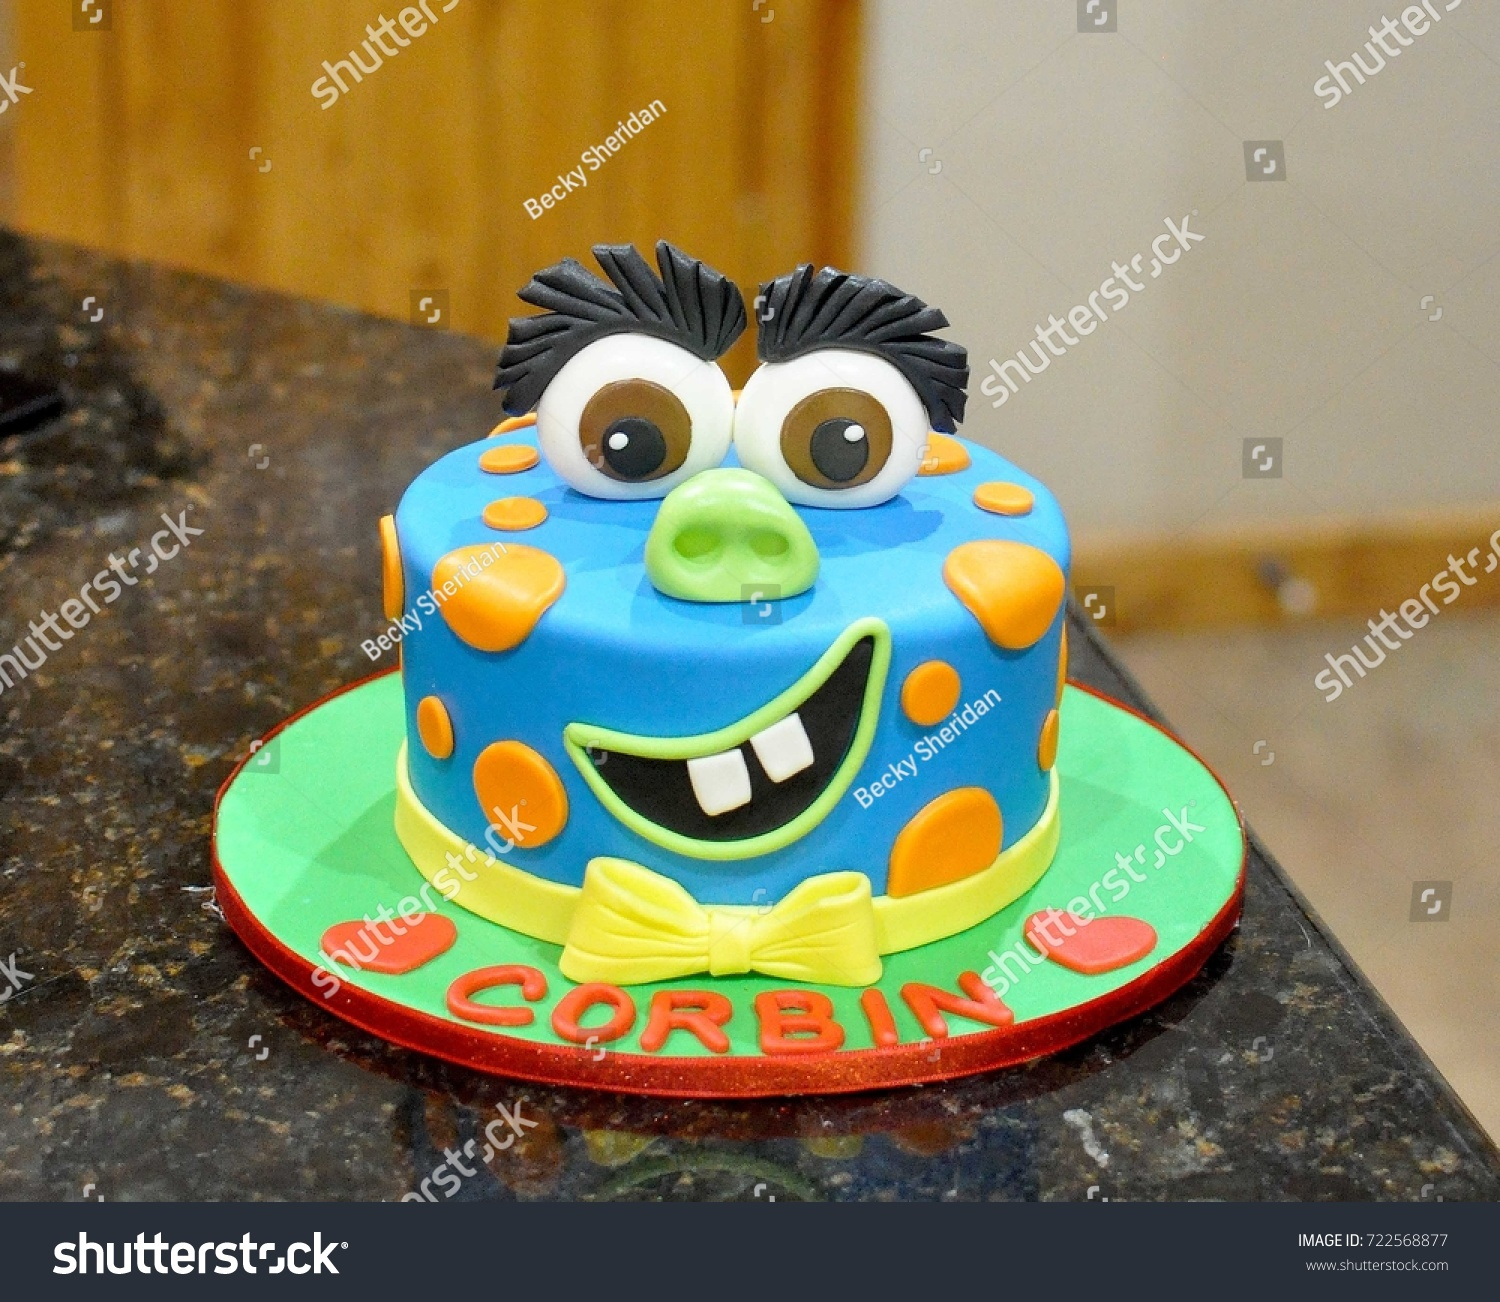 Monster Birthday Cake Custom Birthday Cake Fondant Monster Face Stockfoto Jetzt